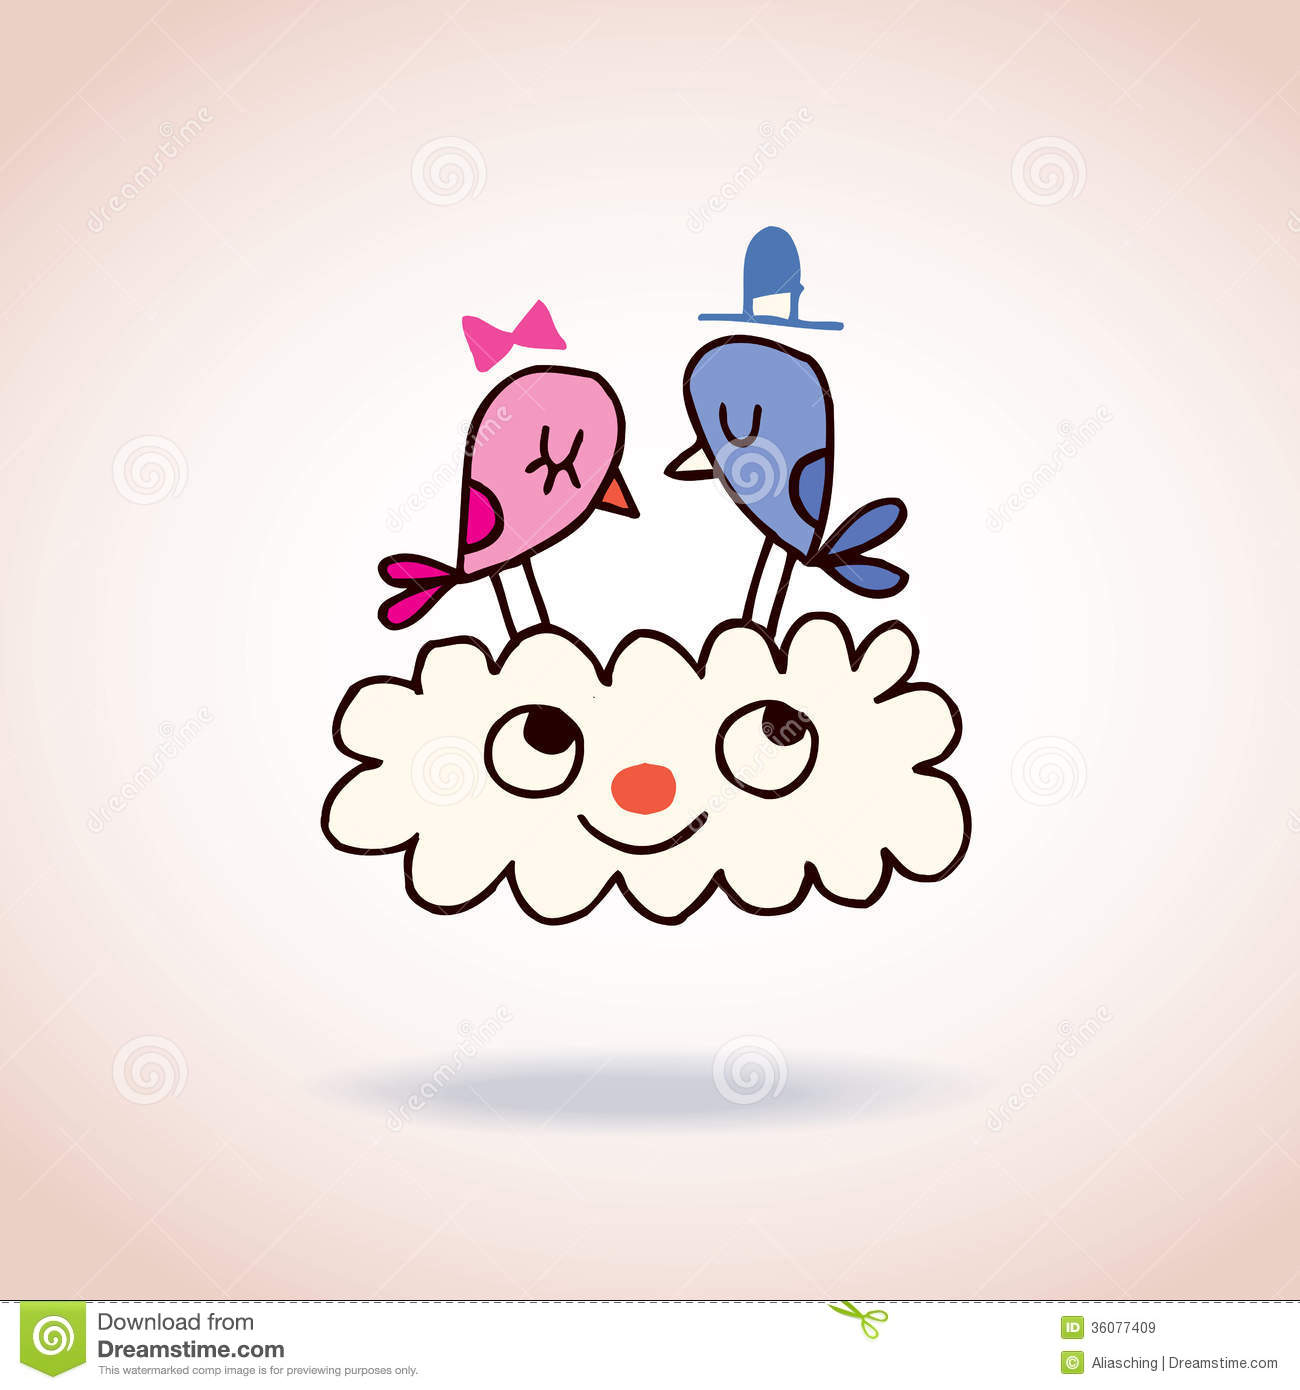 cute Love cartoon Images Fandifavi.com